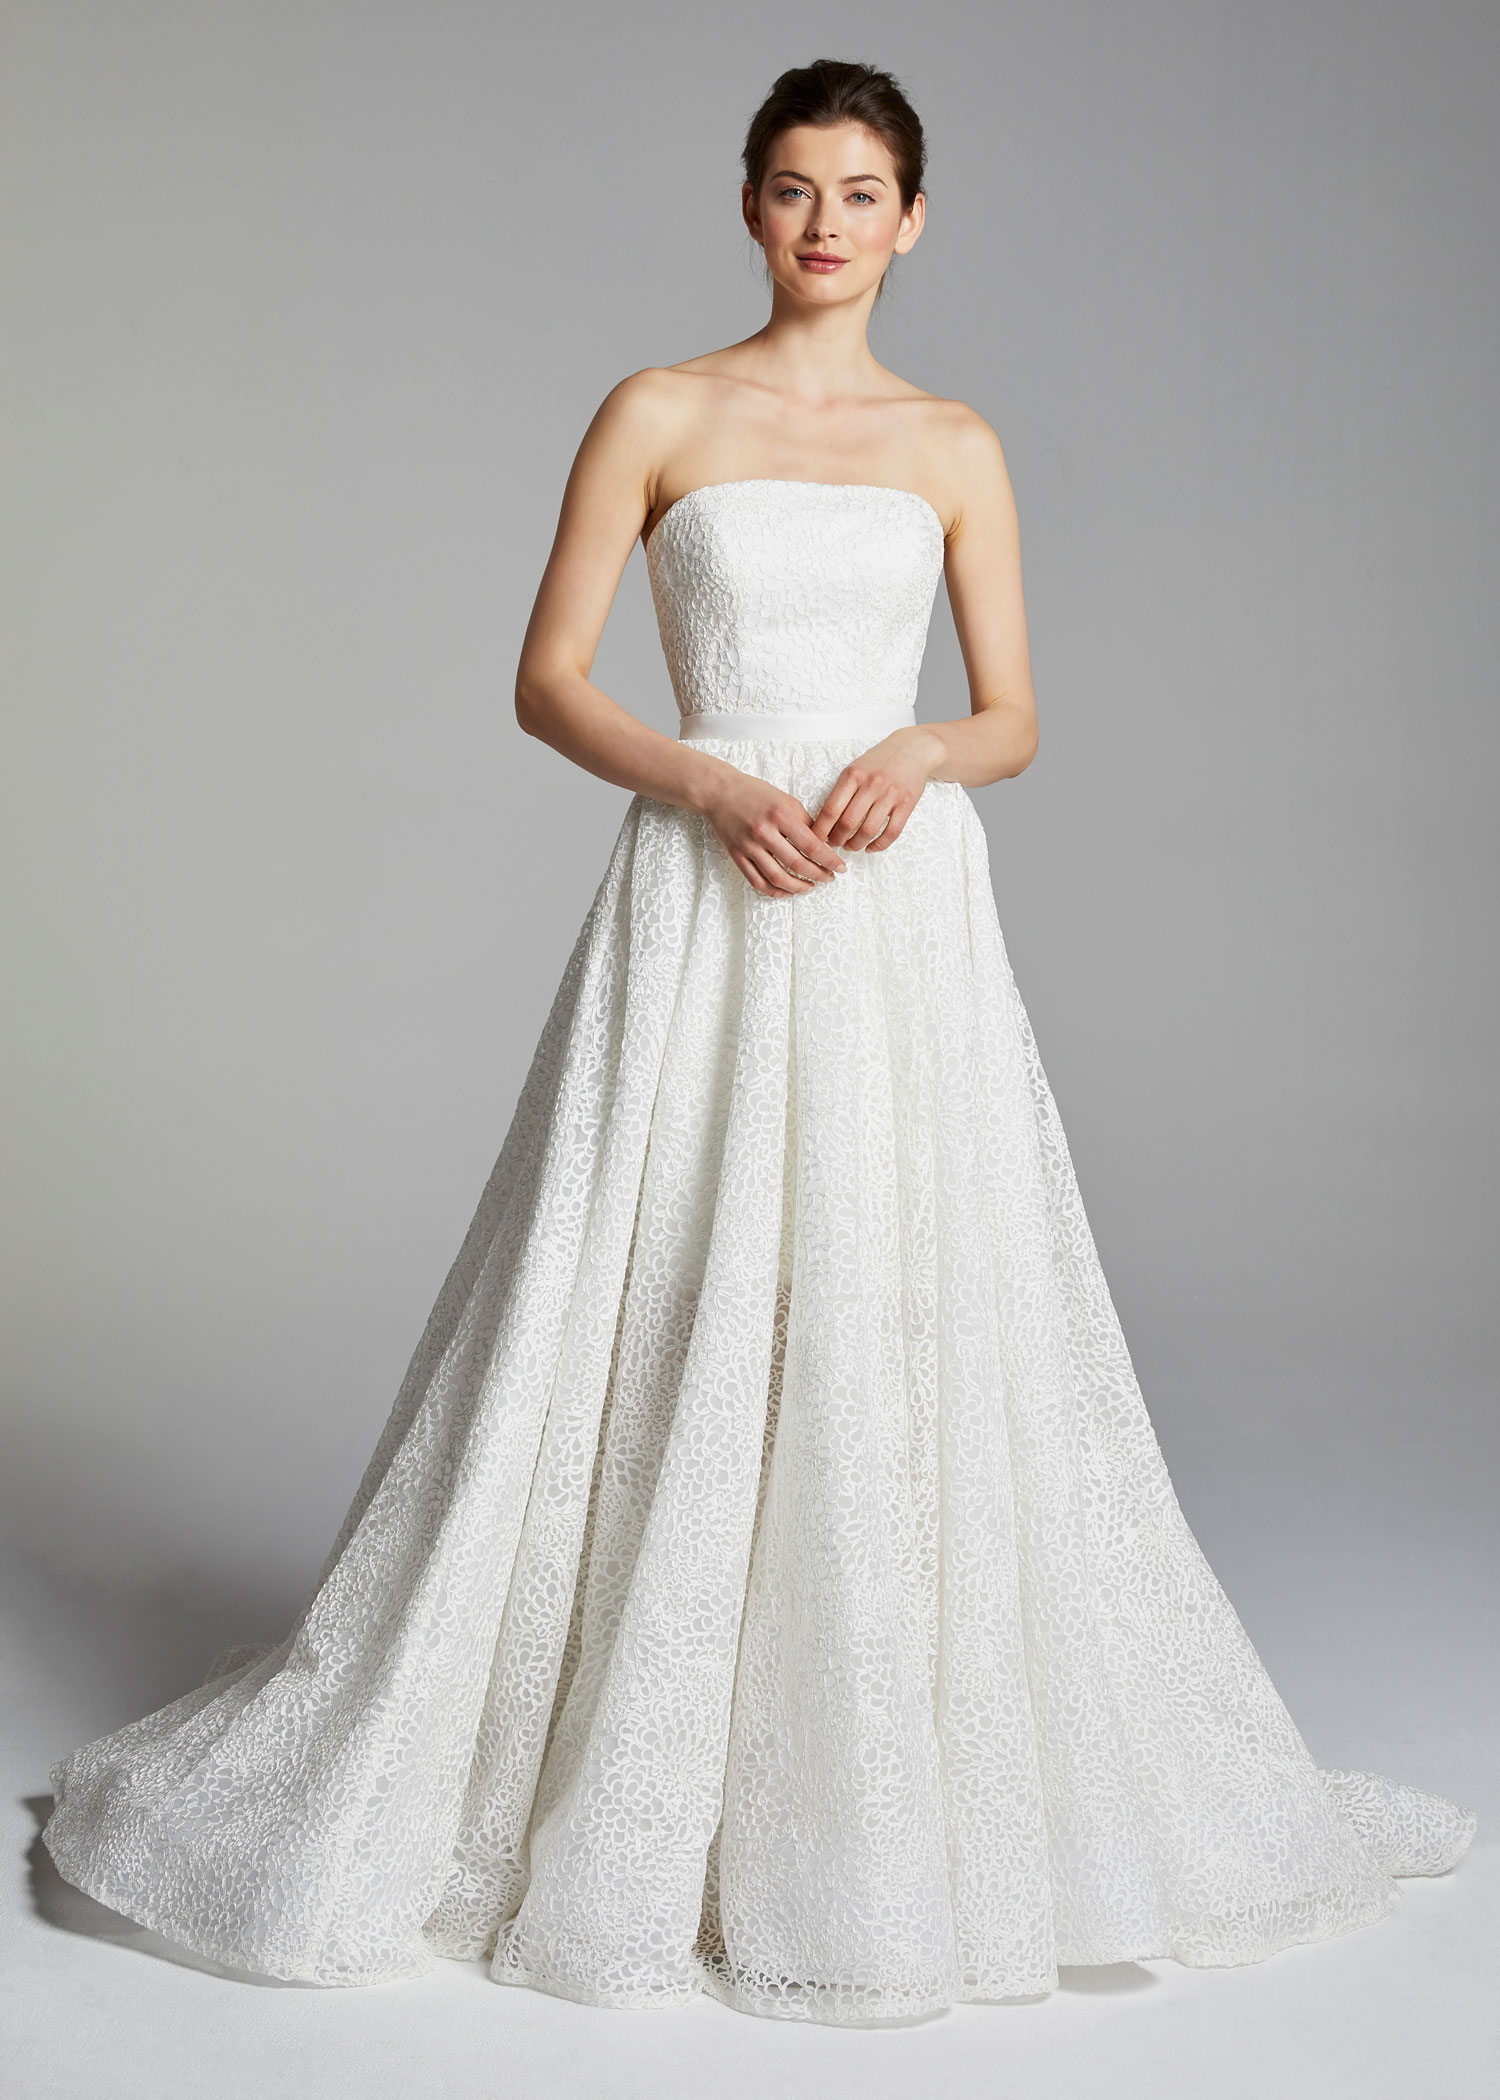 Cocktail Length Strapless Wedding Dress With Overskirt